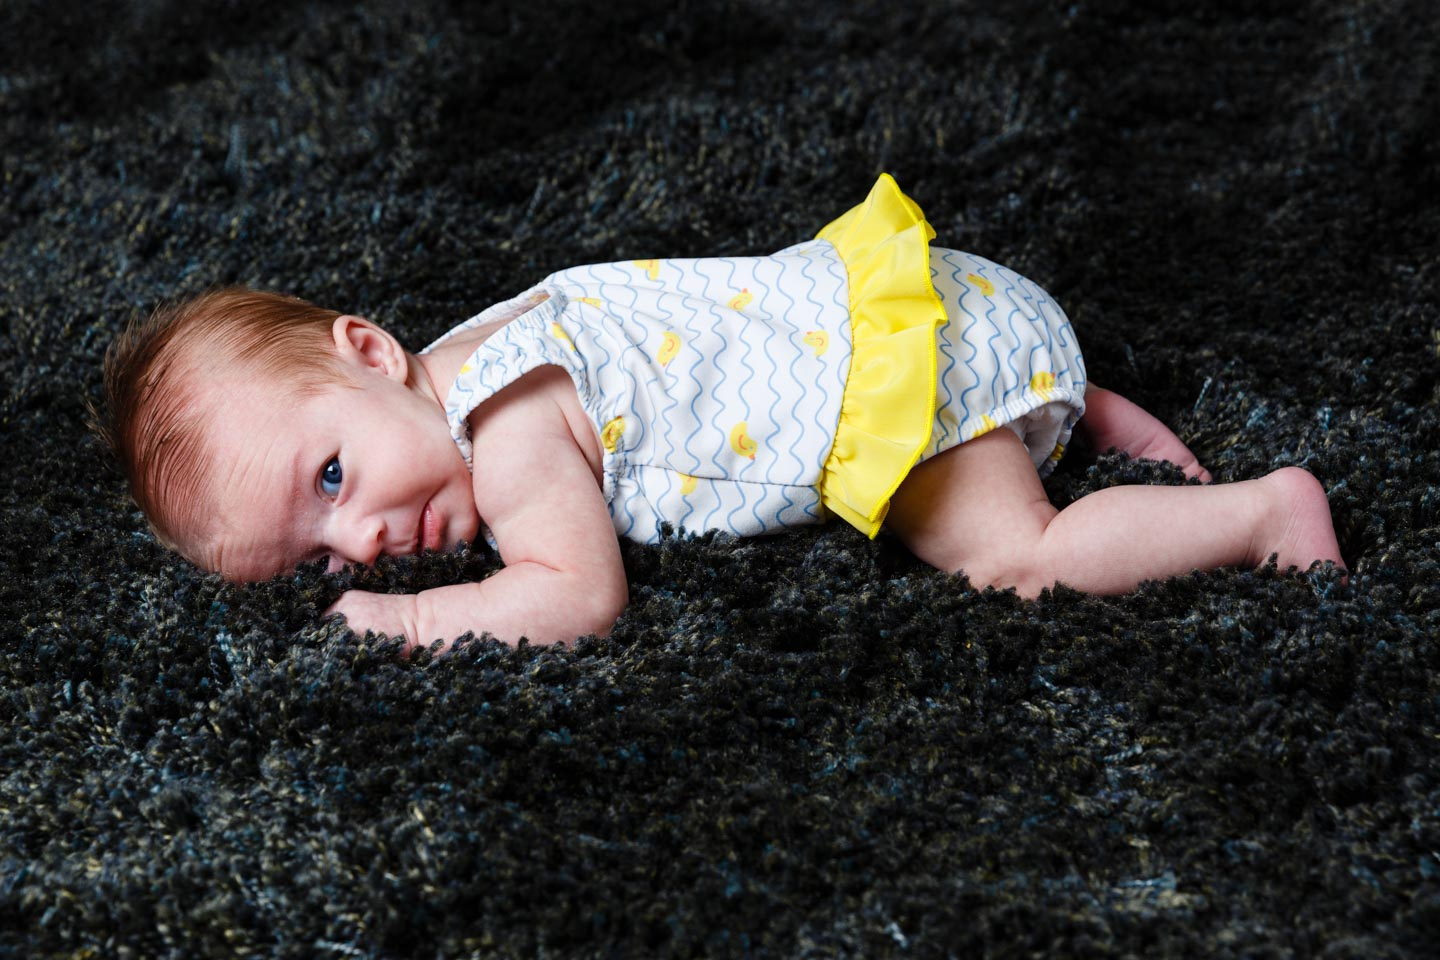 Baby Molly's first photo shoot